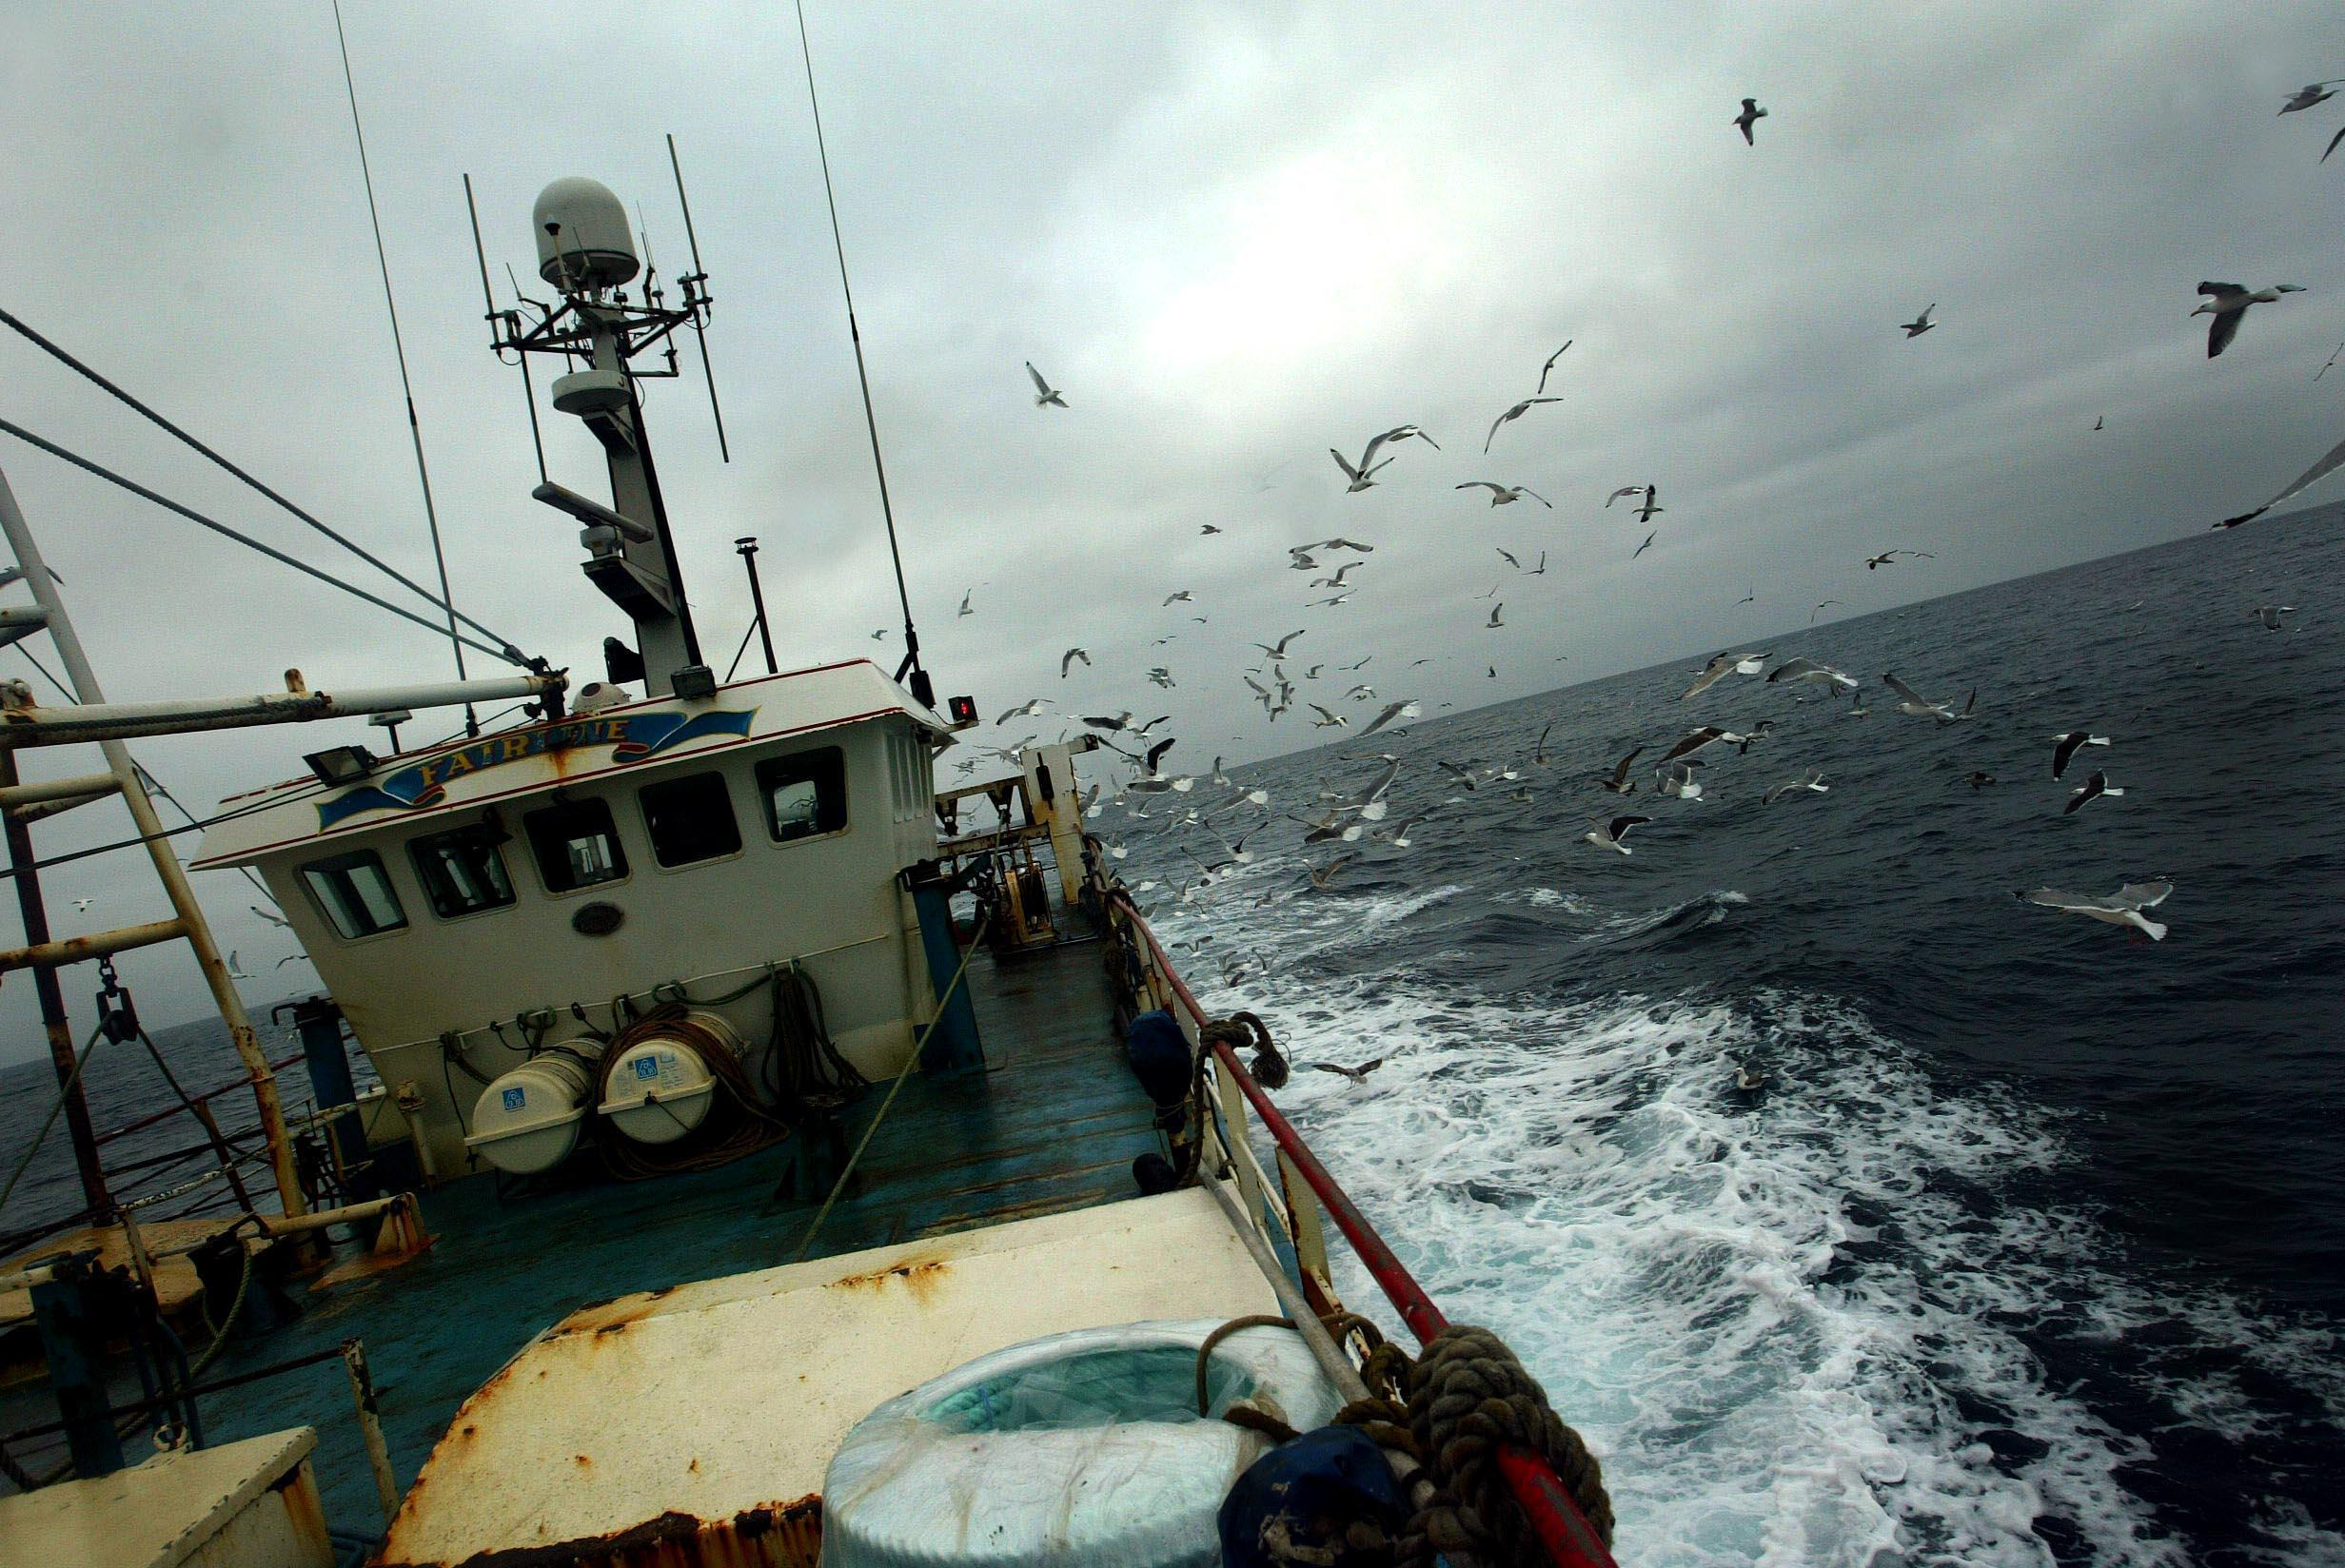 The amount of cod which can be caught is to be reduced dramatically